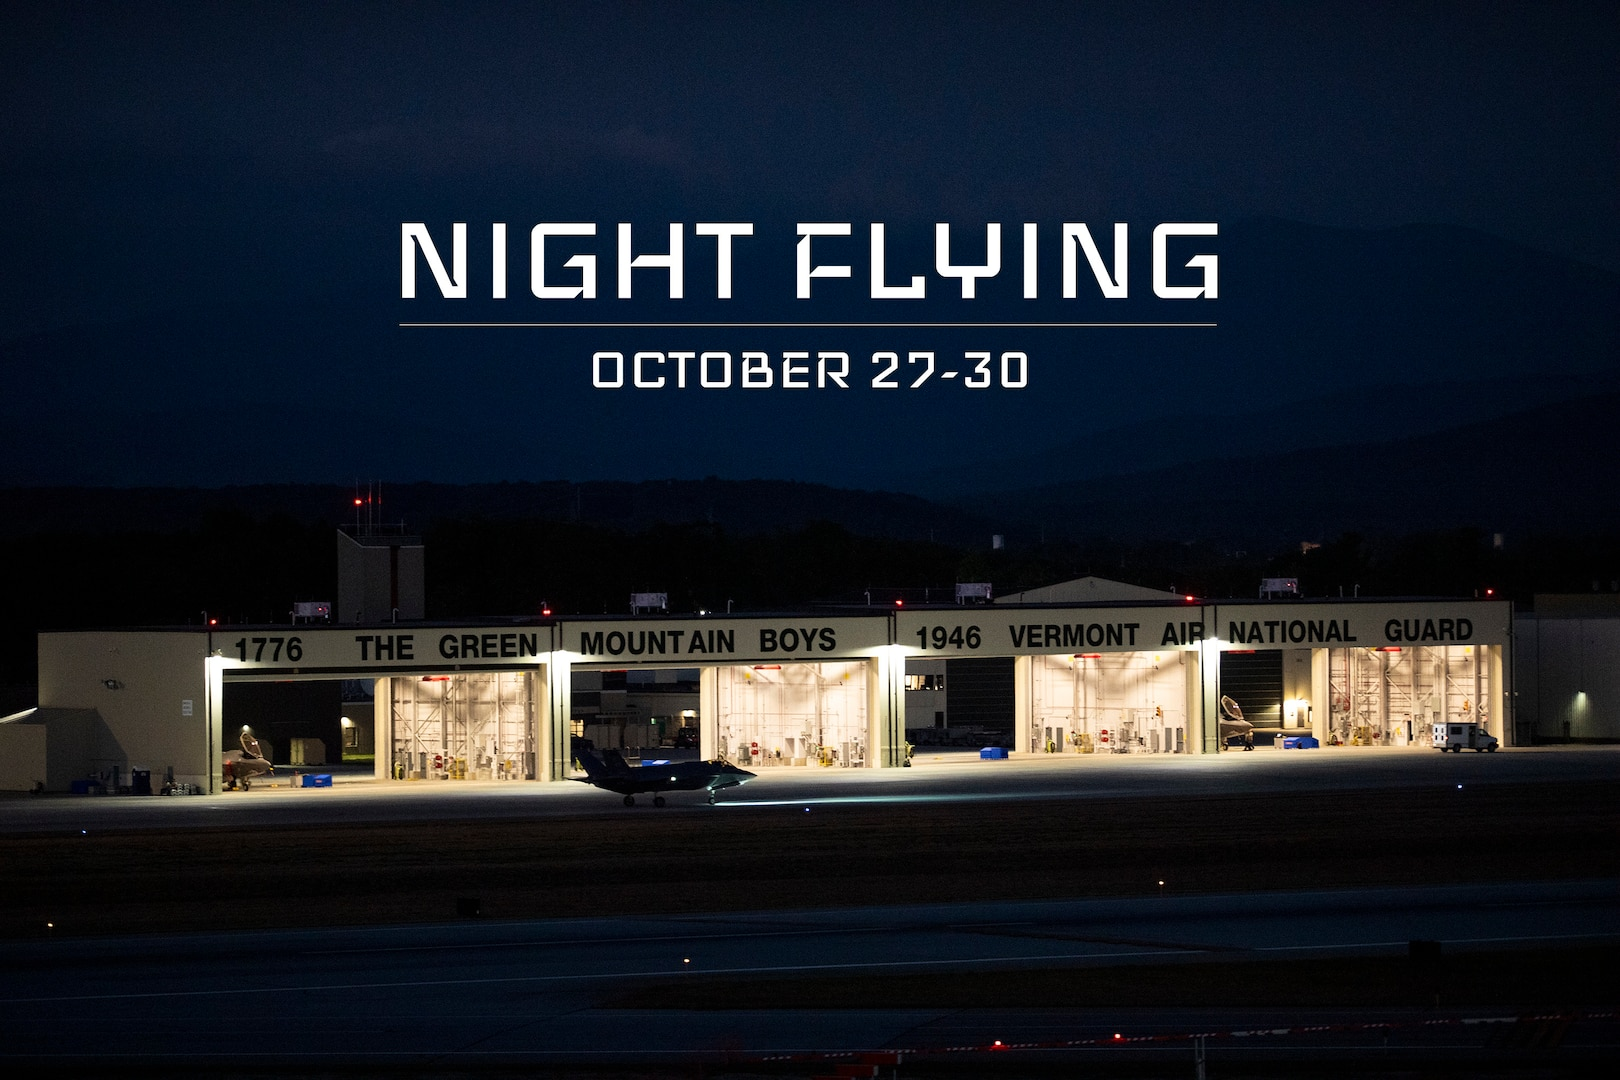 The Vermont Air National Guard is scheduled to conduct night flying operations from Oct. 27-30, with takeoffs occurring between 5-7 p.m. and landings occurring around 8-10 p.m.